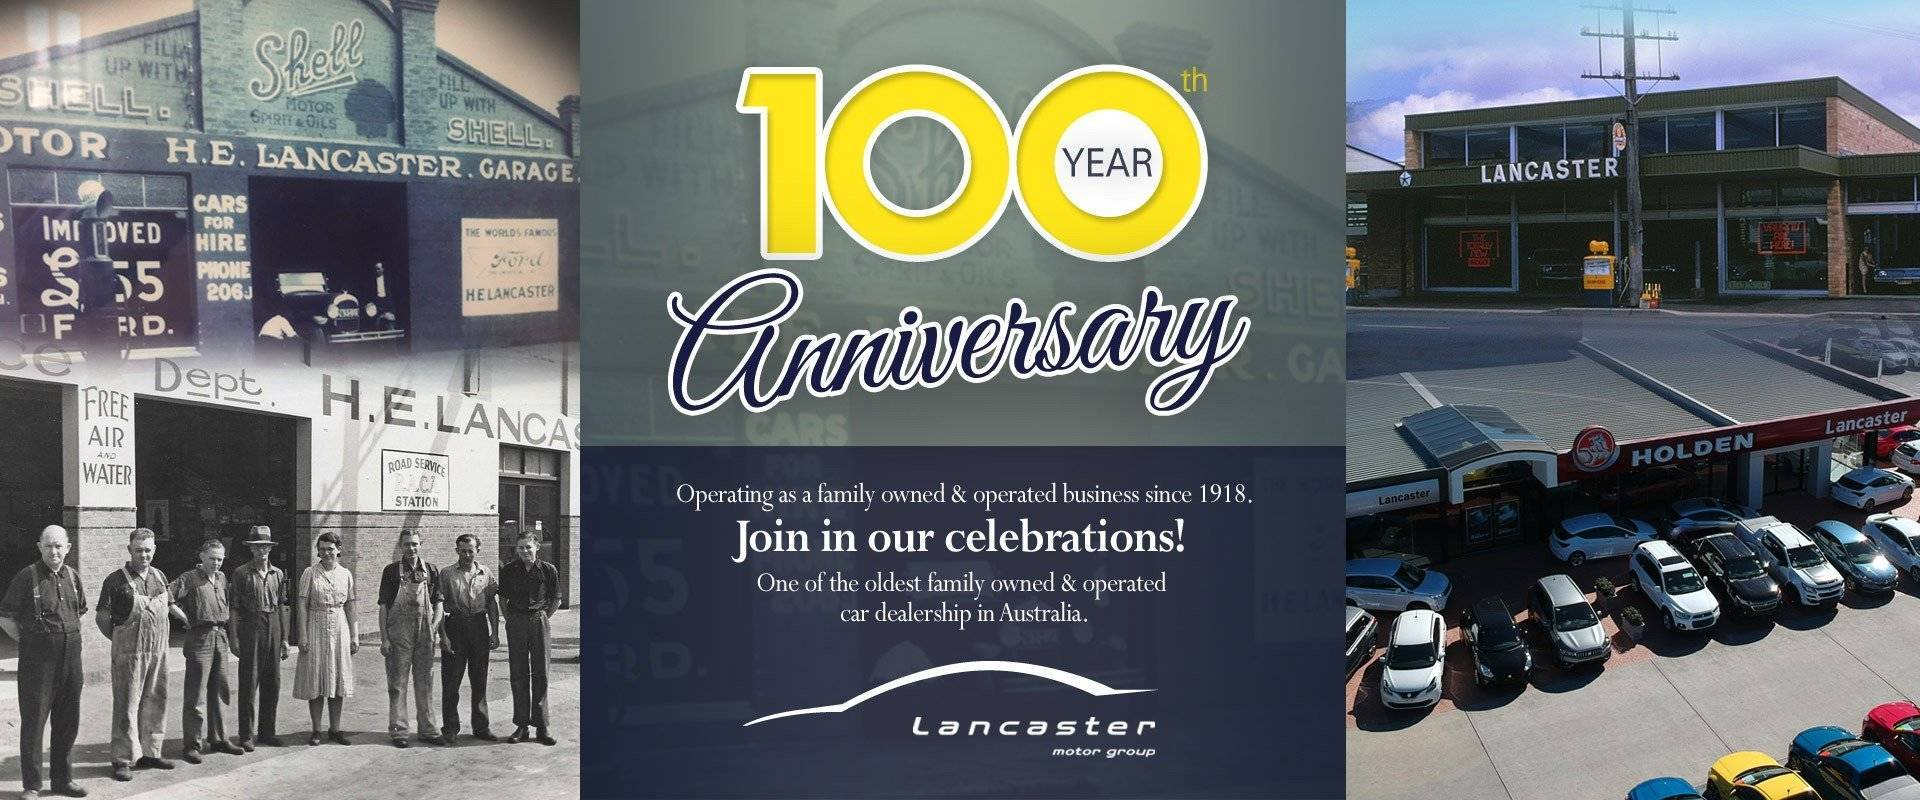 Lancaster Motor Group - 100 Year Anniversary